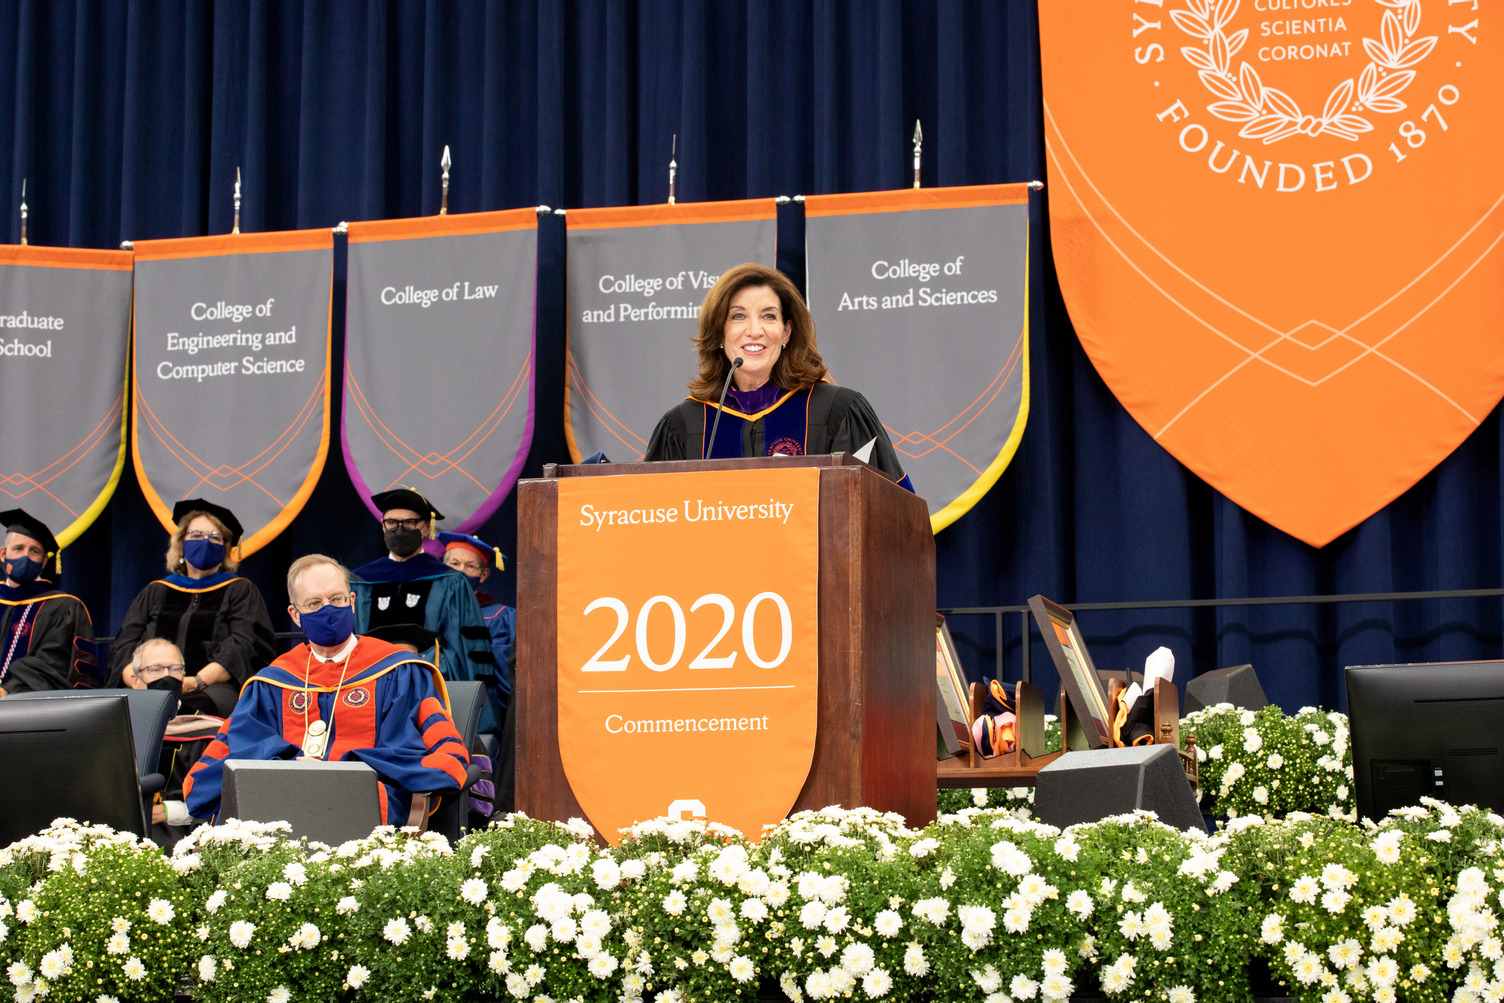 Gov. Kathy Hochul addresses the crowd at 2020 Commencement